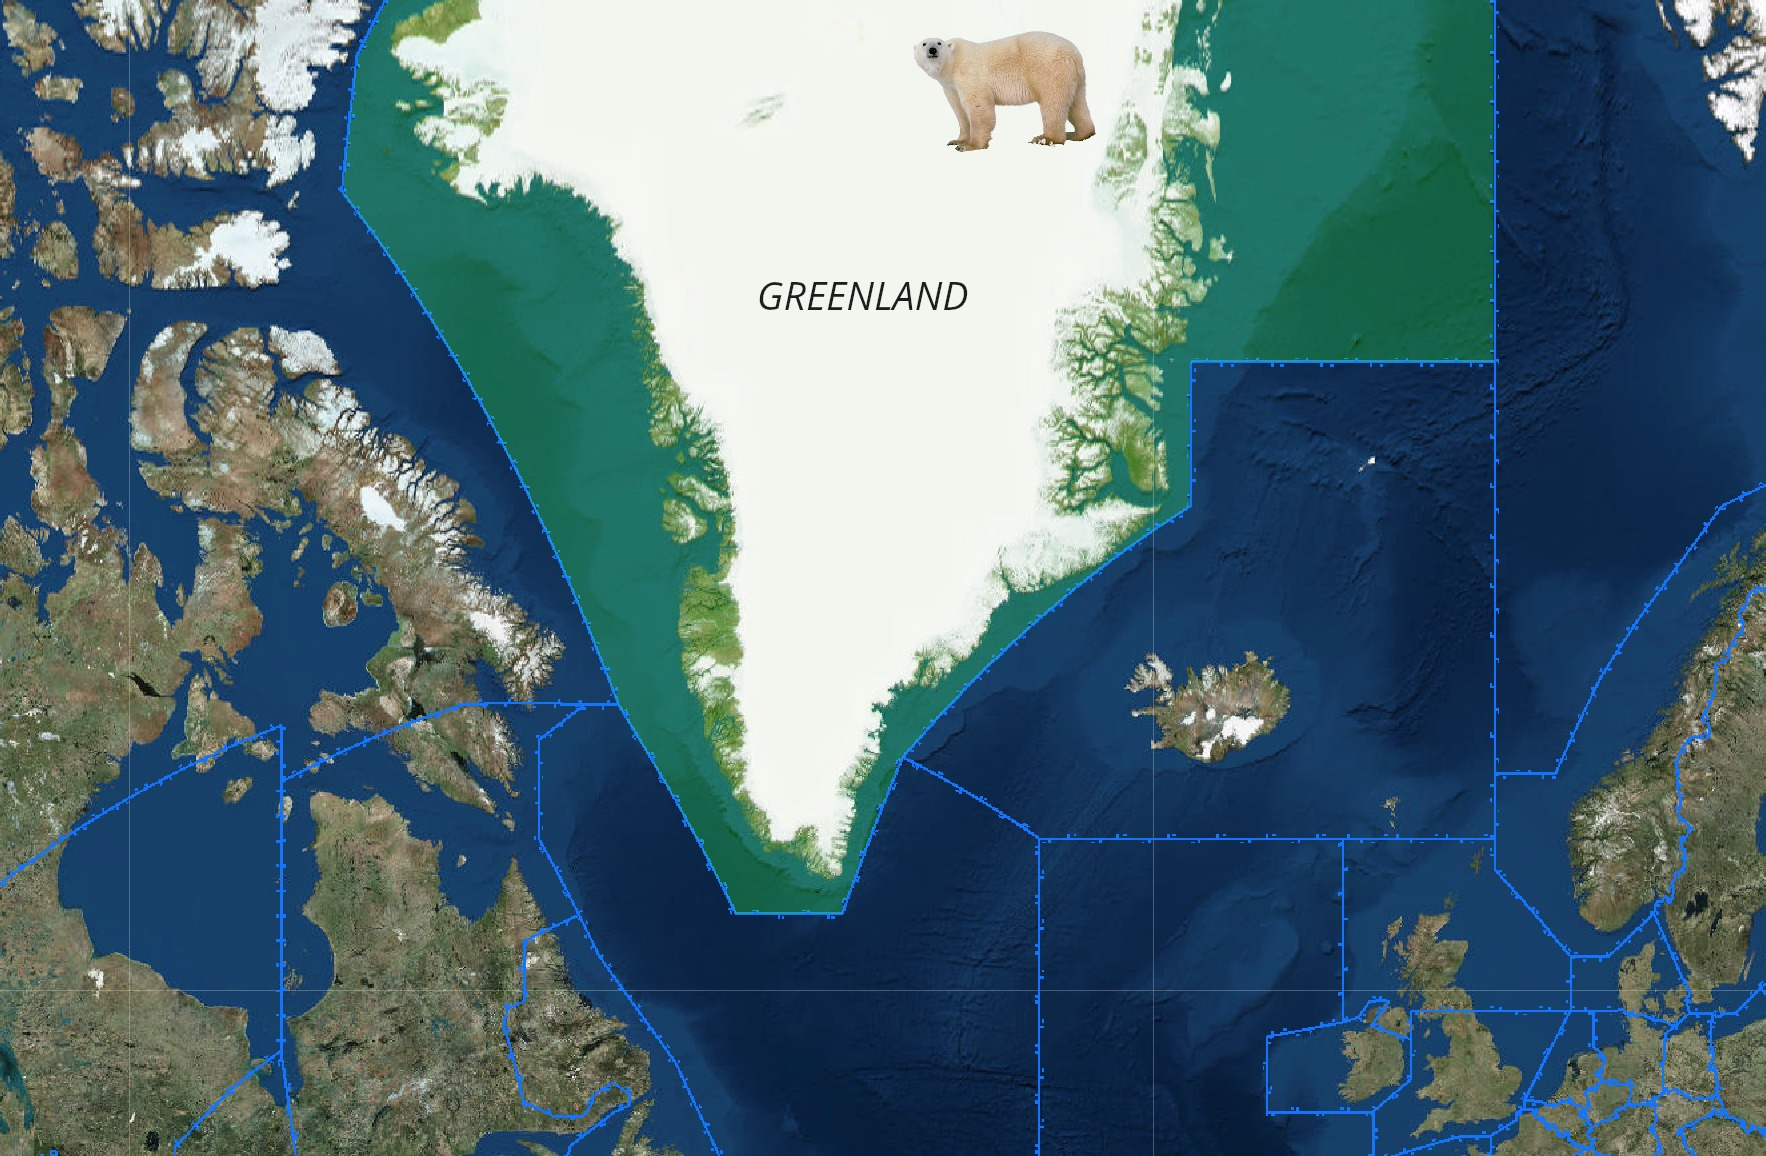 Greenland FIR to change its name